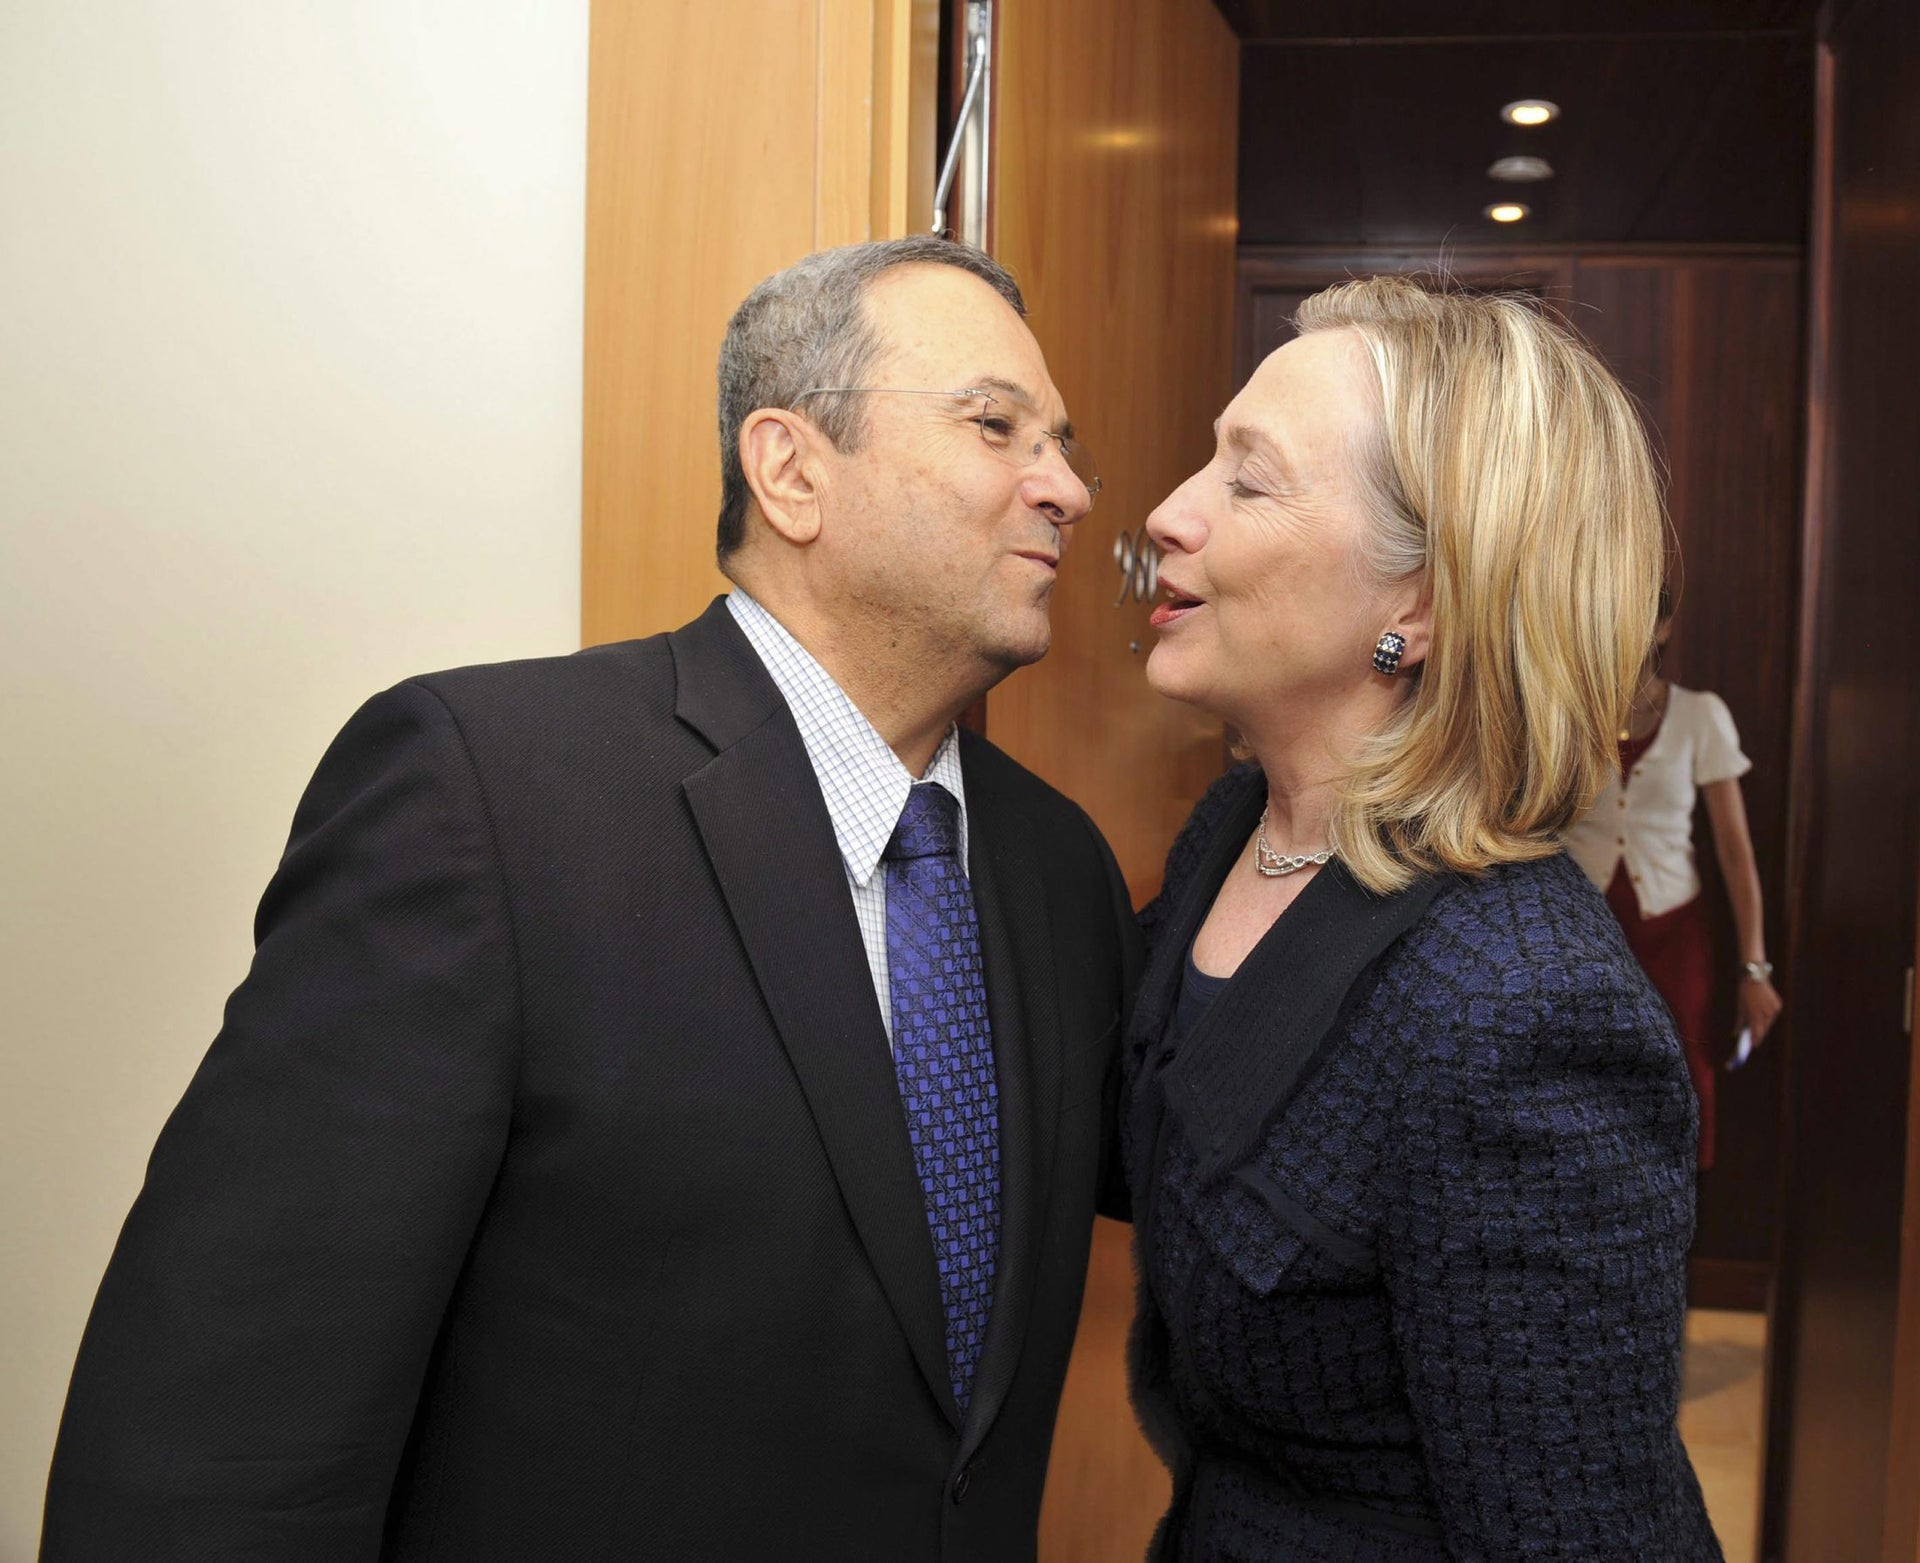 Hillary Clinton is greeted by Israel's then-Defense Minister Ehud Barak in Jerusalem, September 15, 2010.